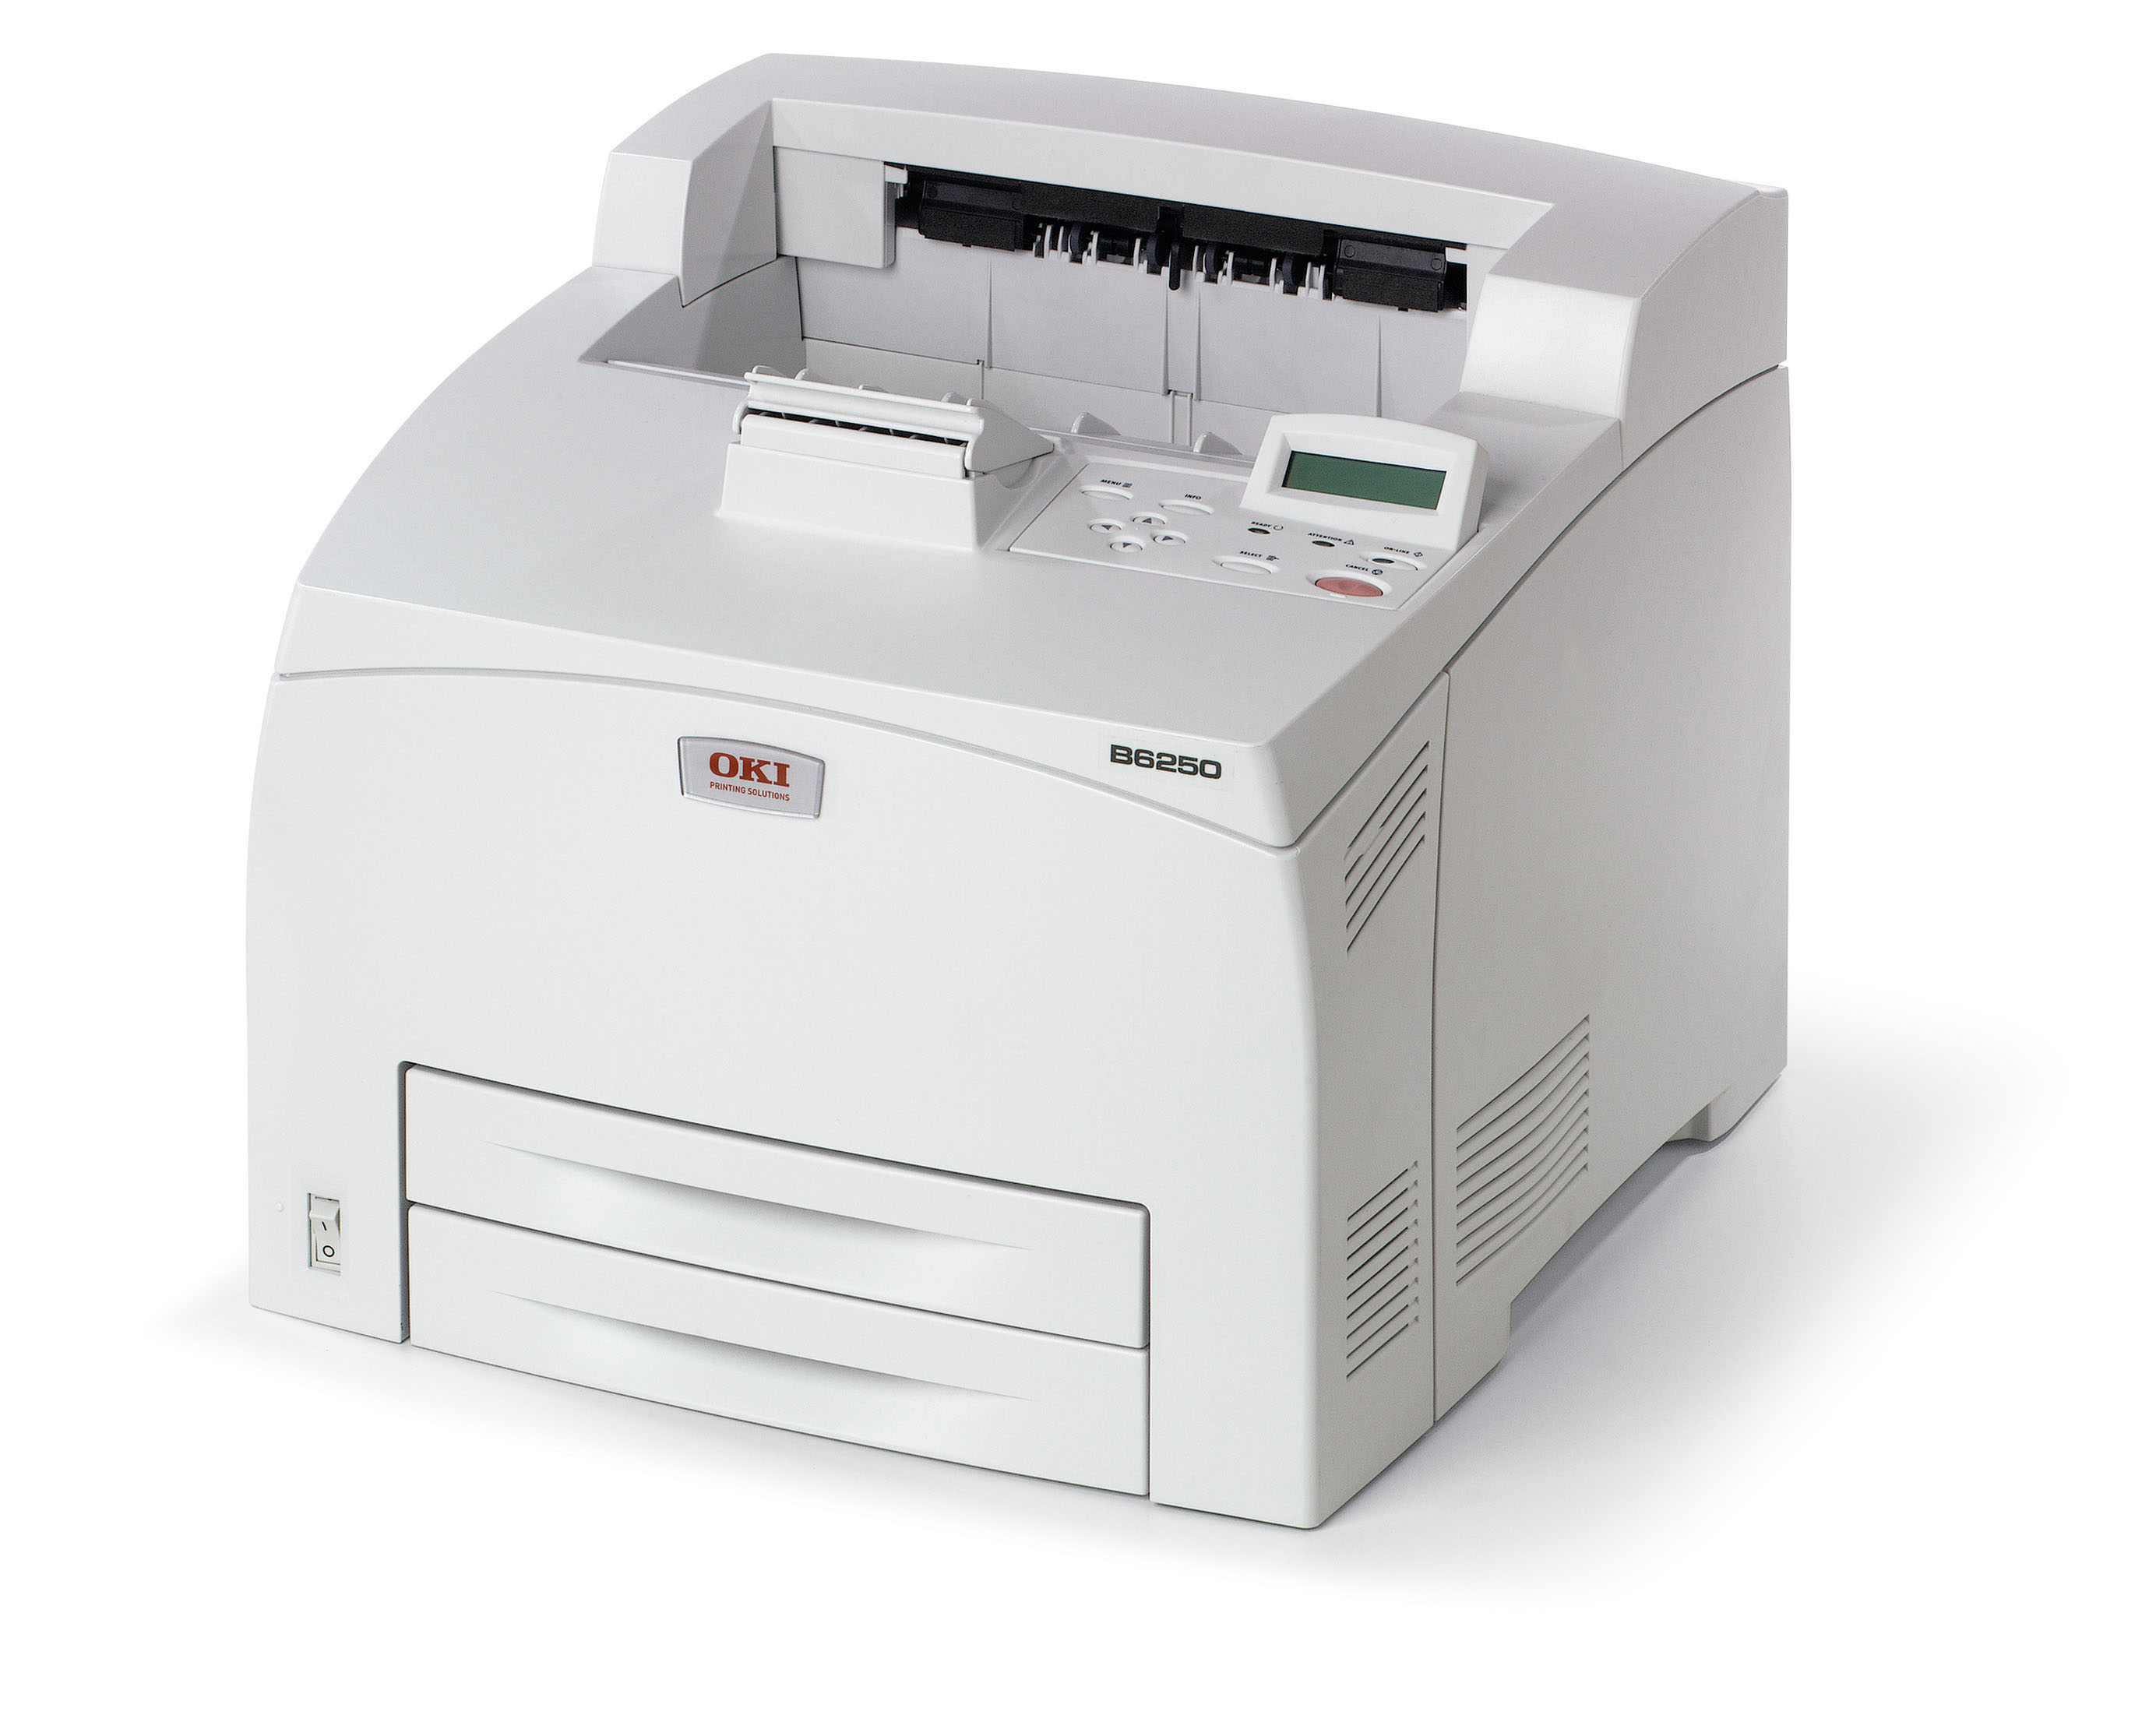 Oki B6250 Printer 01224801 - Refurbished